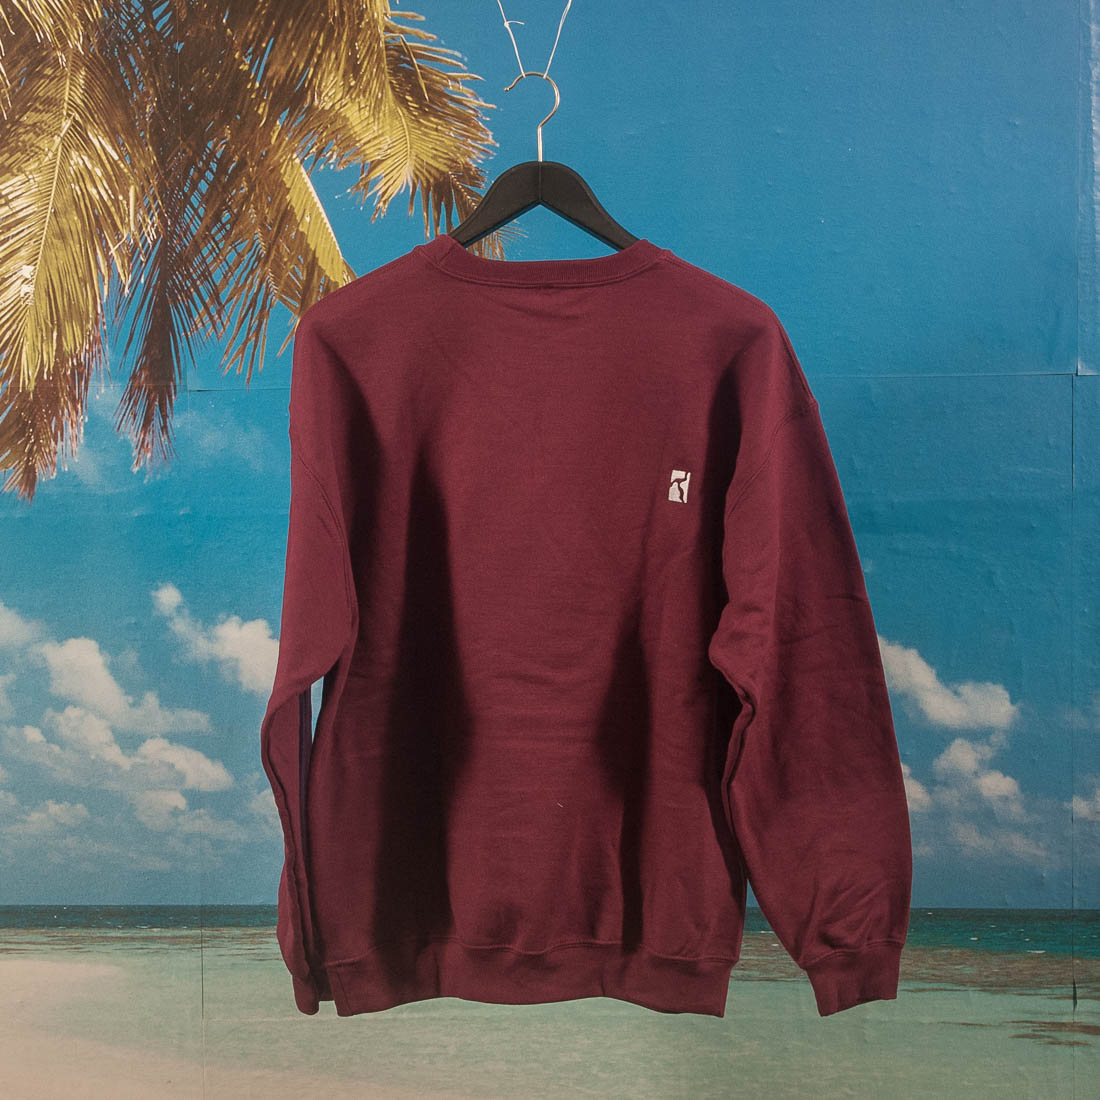 Poetic Collective - Still Life Crewneck - Maroon